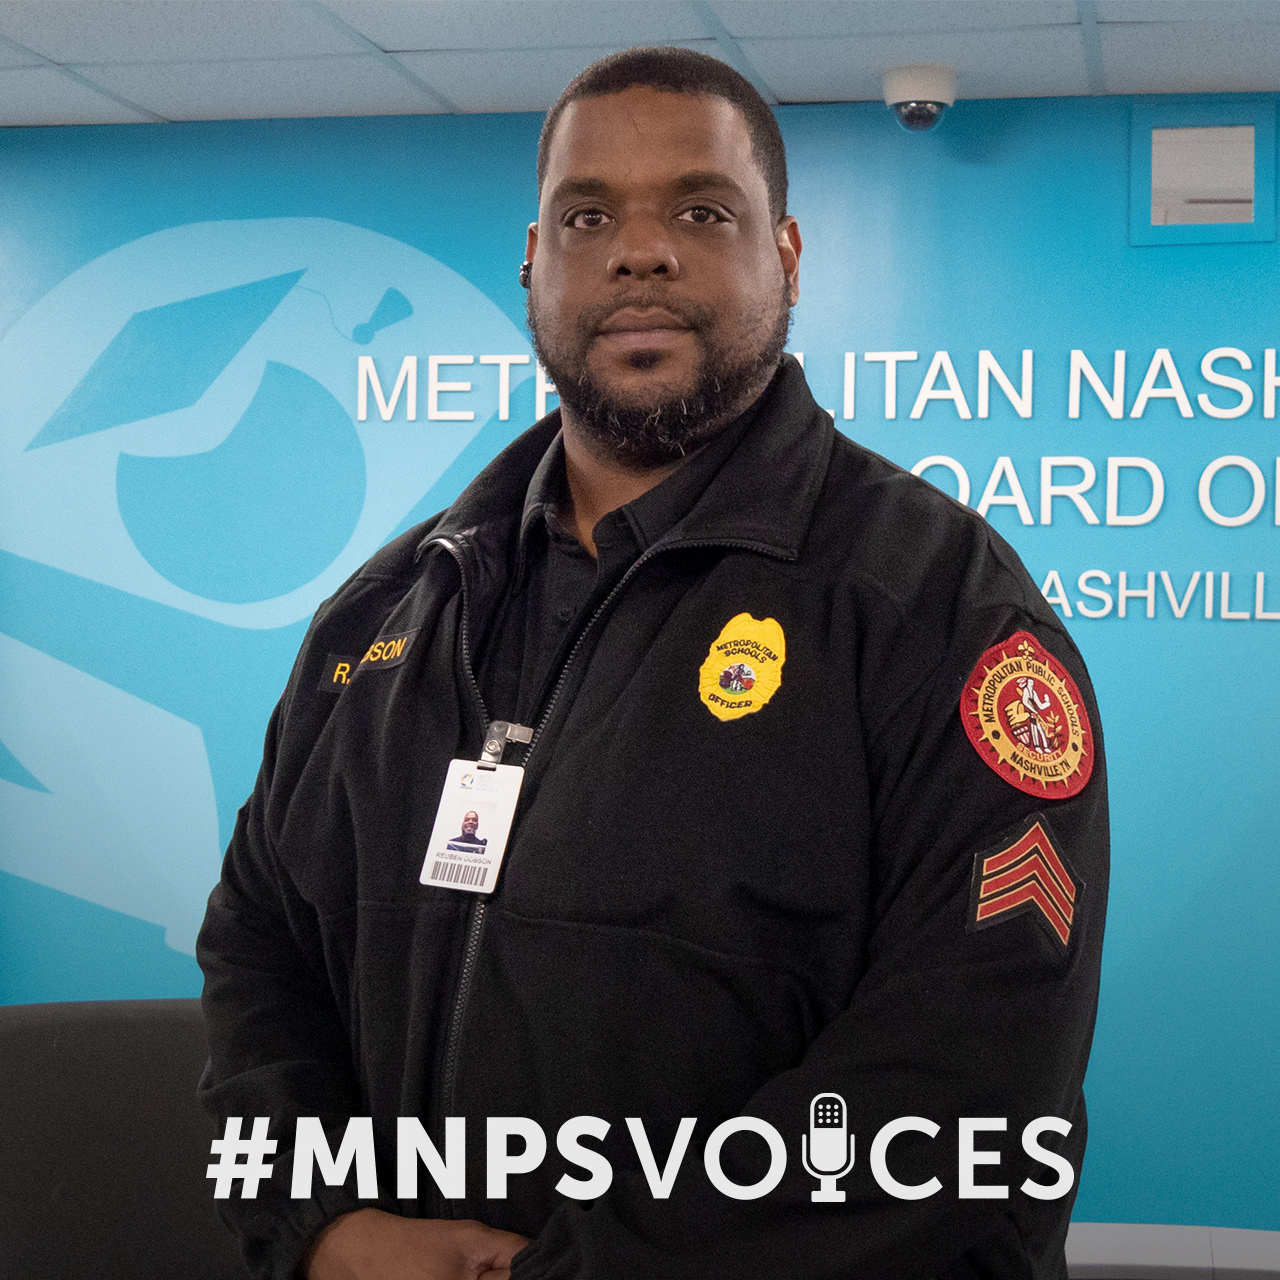 #MNPSVoices: Officer Reuben Dobson, Interim Field Director